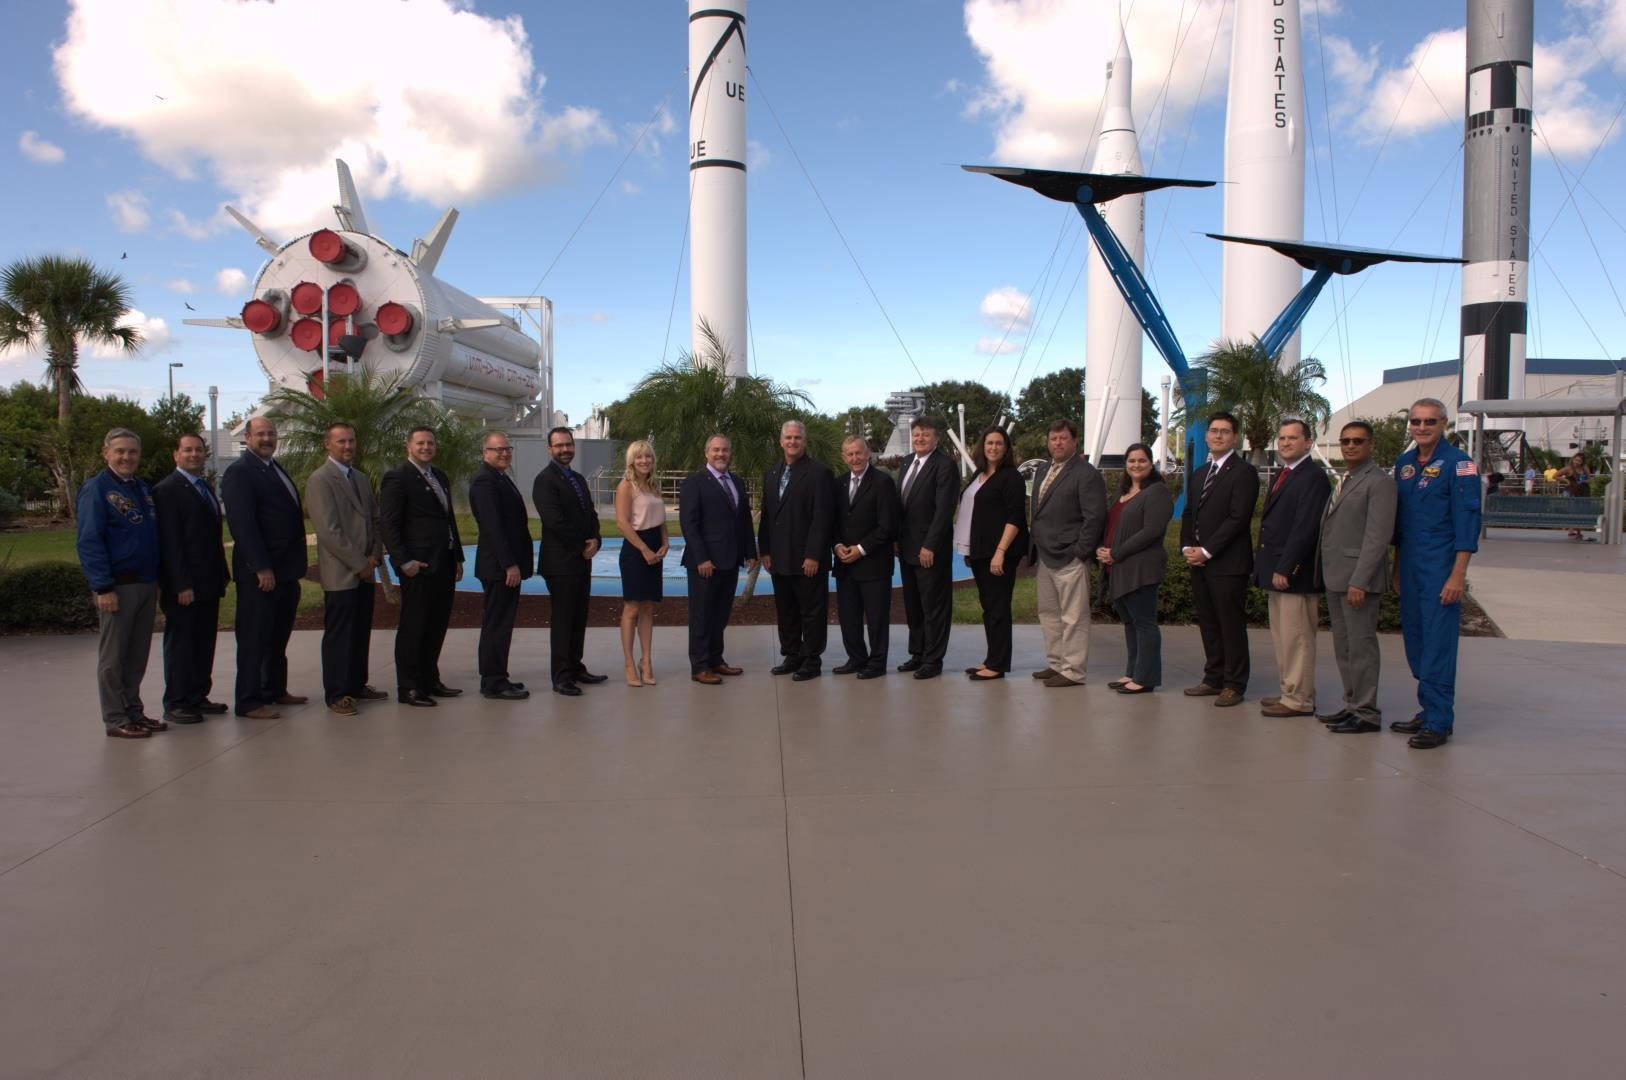 A group of people stand in front of an outdoor display of rockets